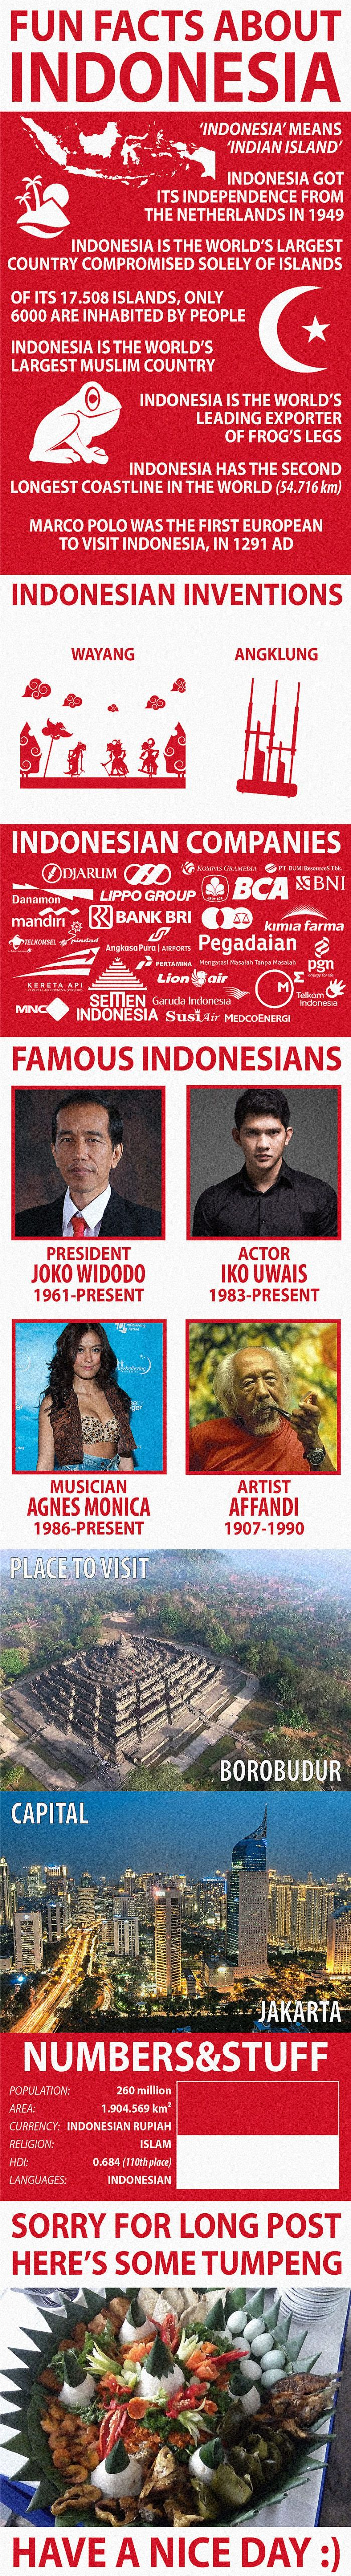 Indonesian facts